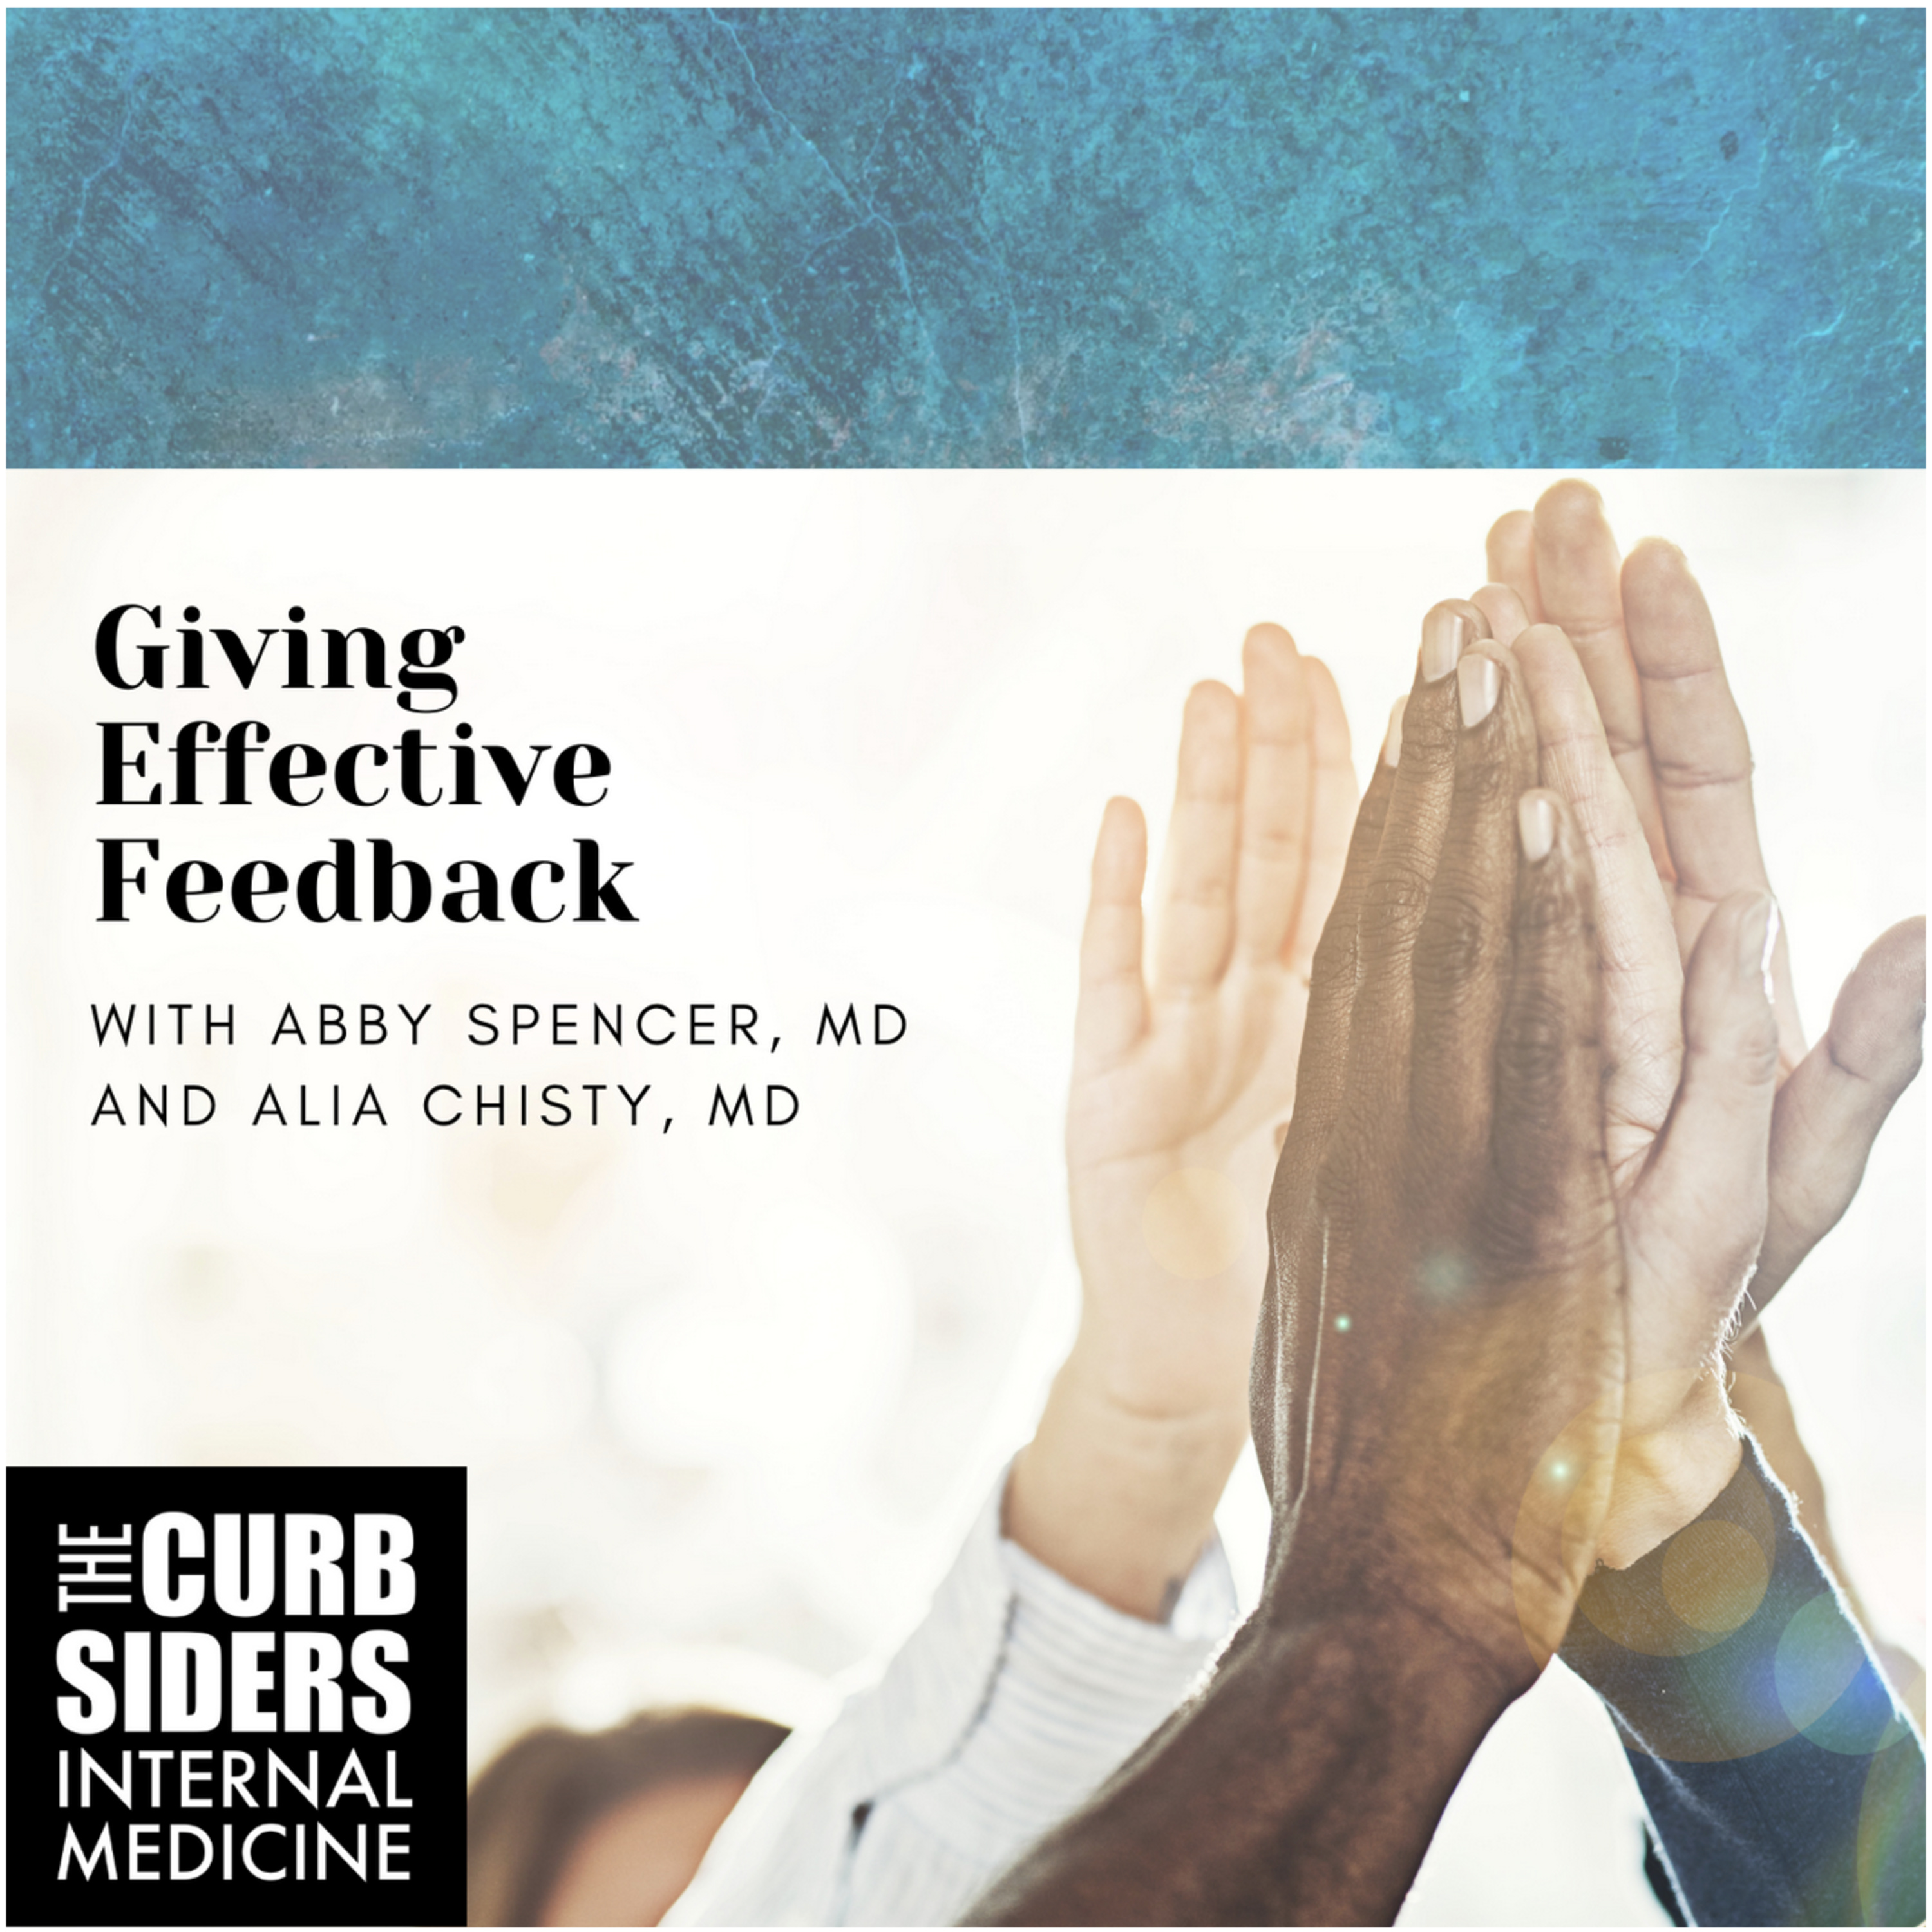 #233 Giving Effective Feedback with Drs. Abby Spencer and Alia Chisty - Is the feedback sandwich good enough to feed your brain hole?